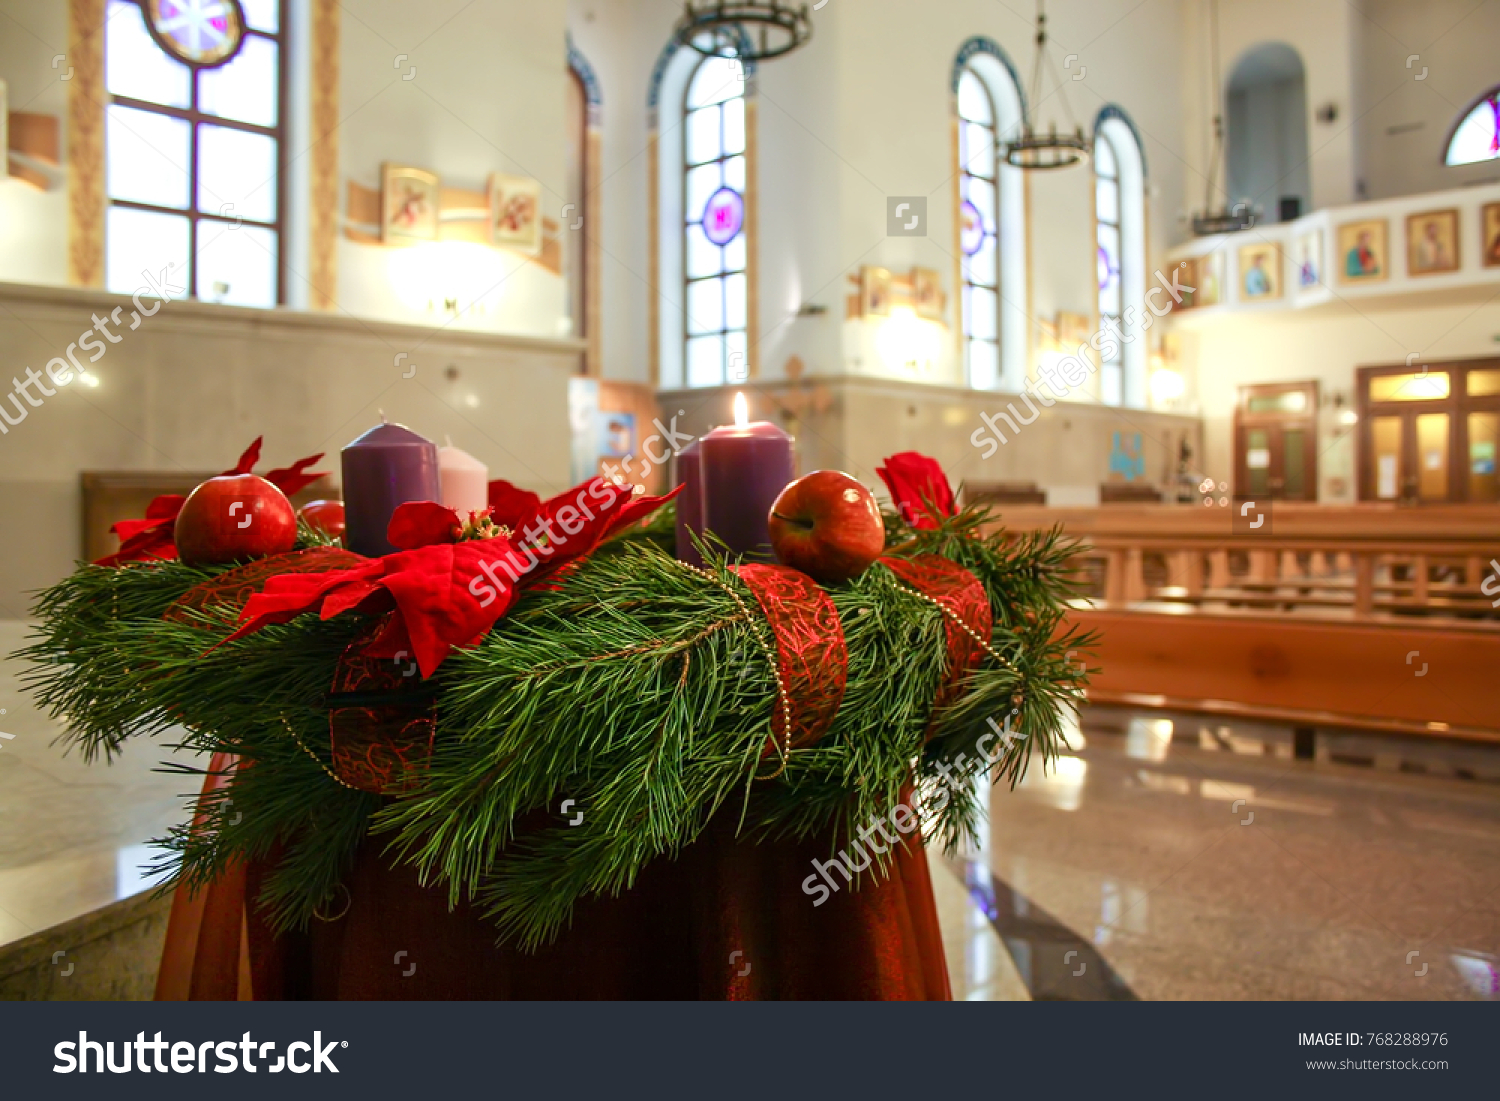 Christmas Wreath Candles Advent Interior Stock Photo Royalty Free 768288976